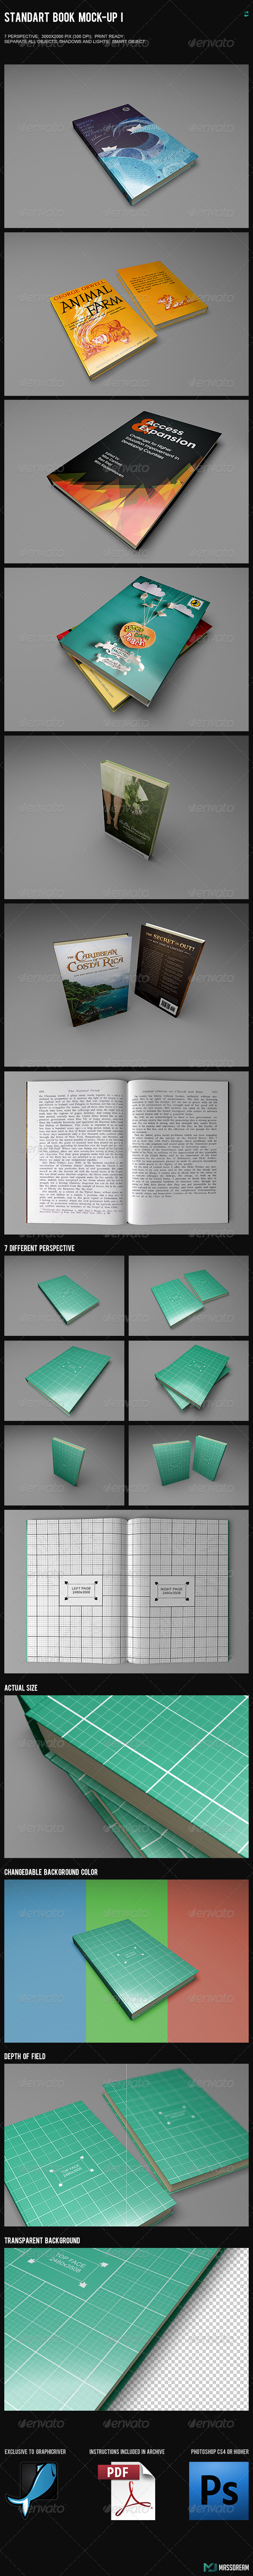 Standart Book Mock-Up I - Books Print